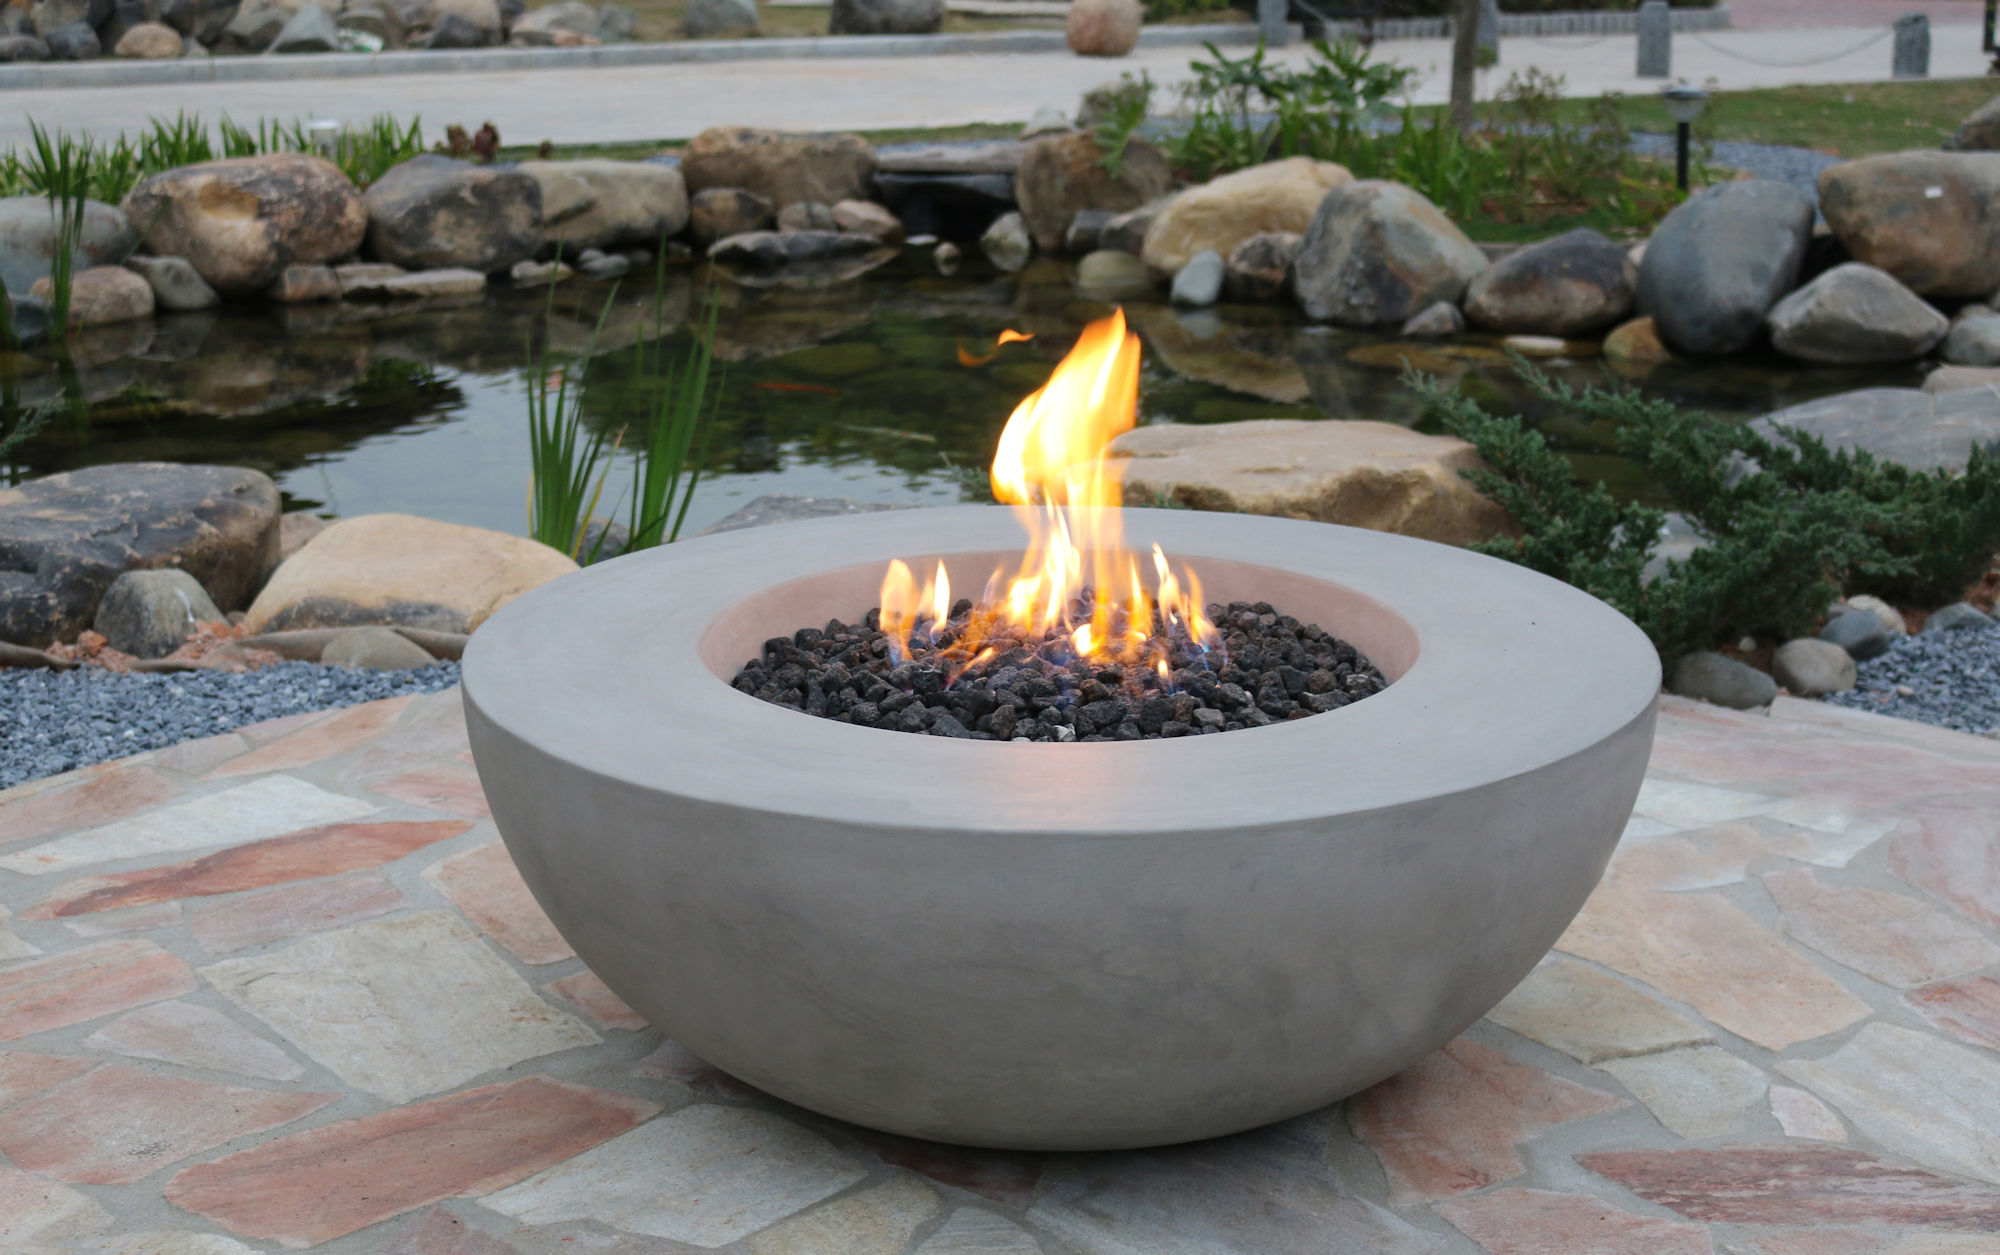 Firebowl Fire Pit Product Photo